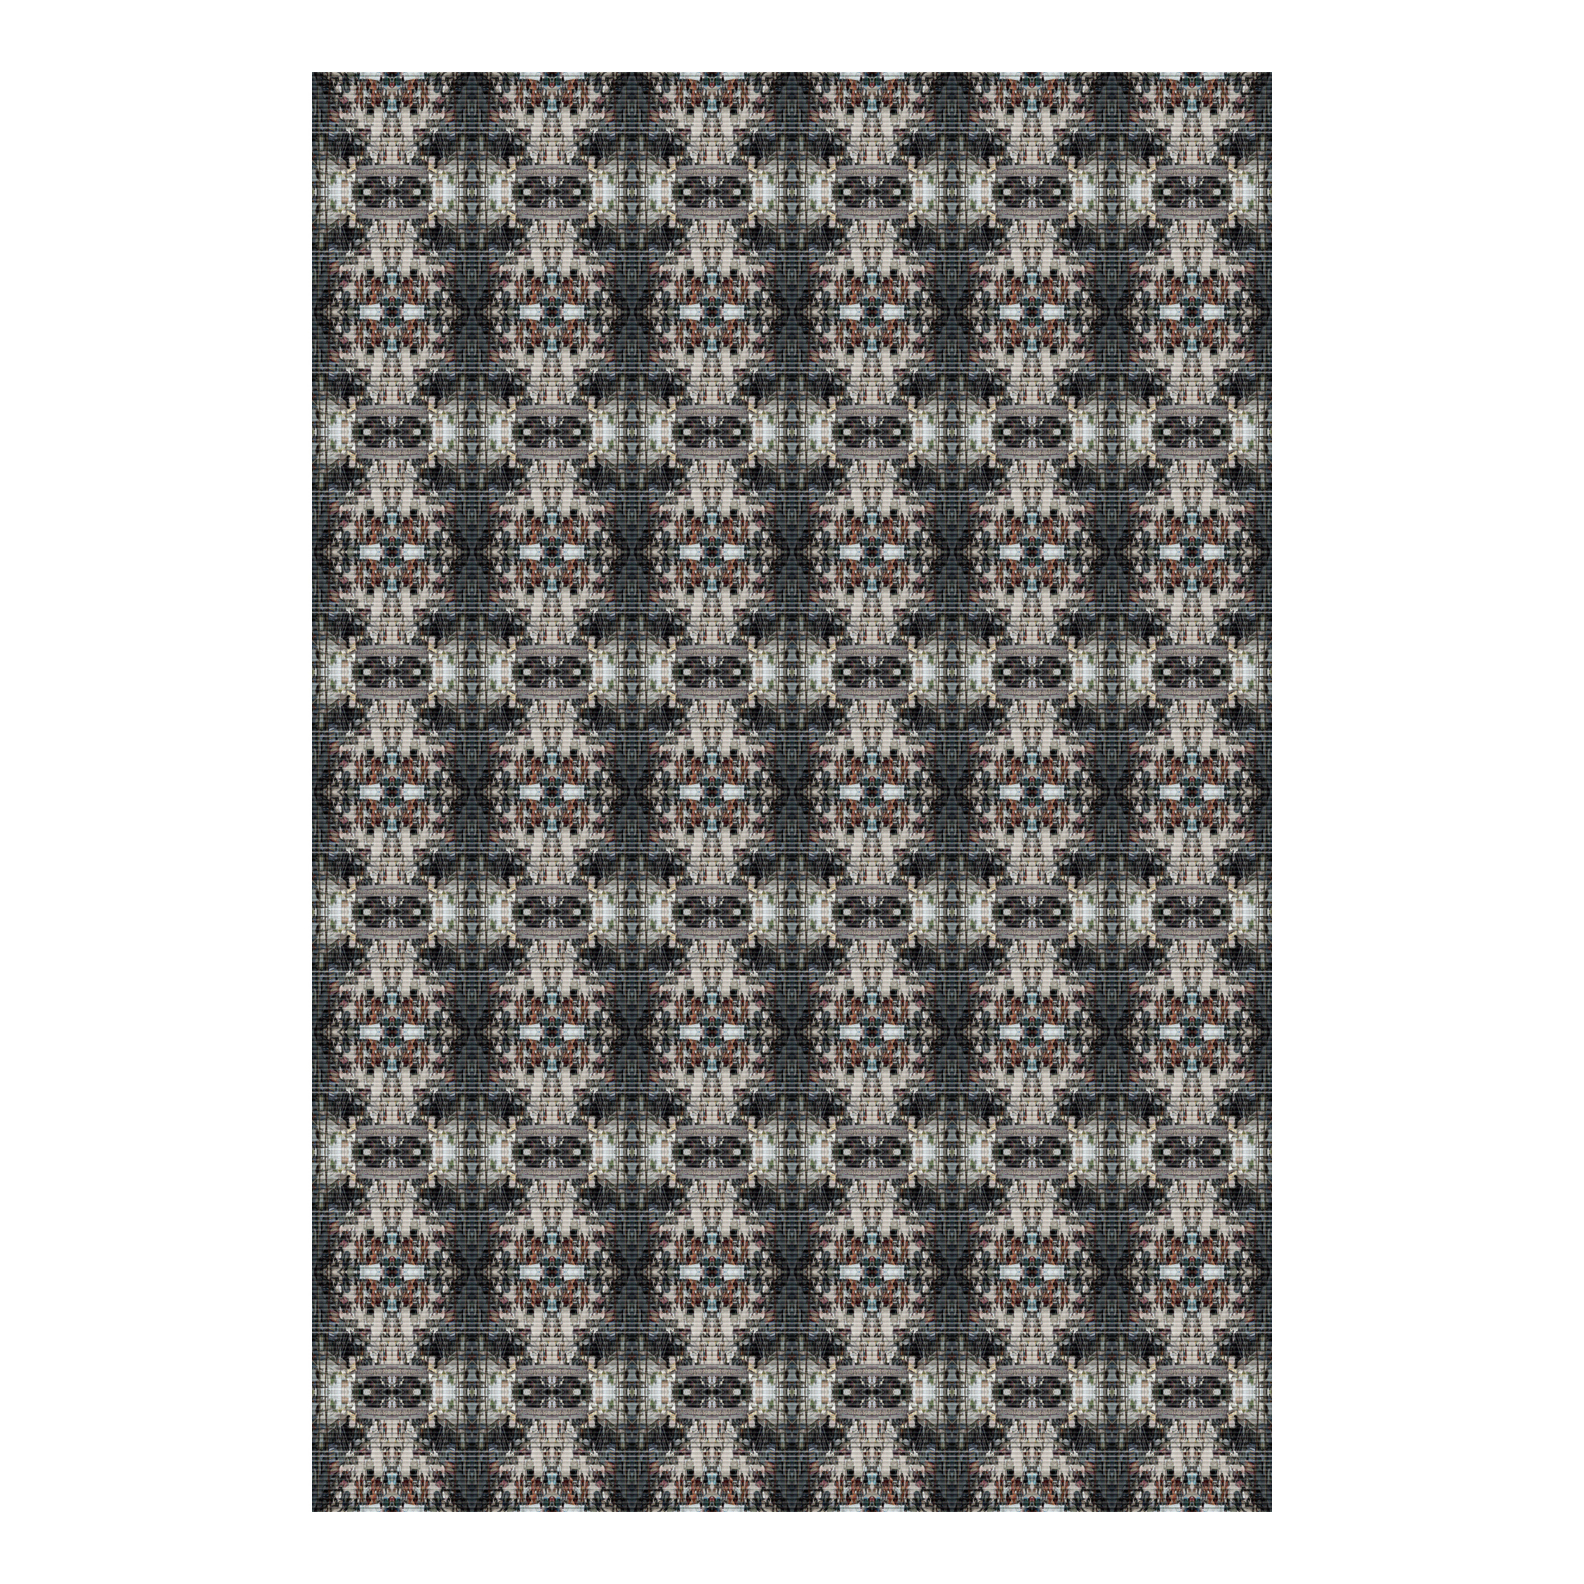 Slum Carpet  2016  Polypropylene and Rubber  72 x 48 in.